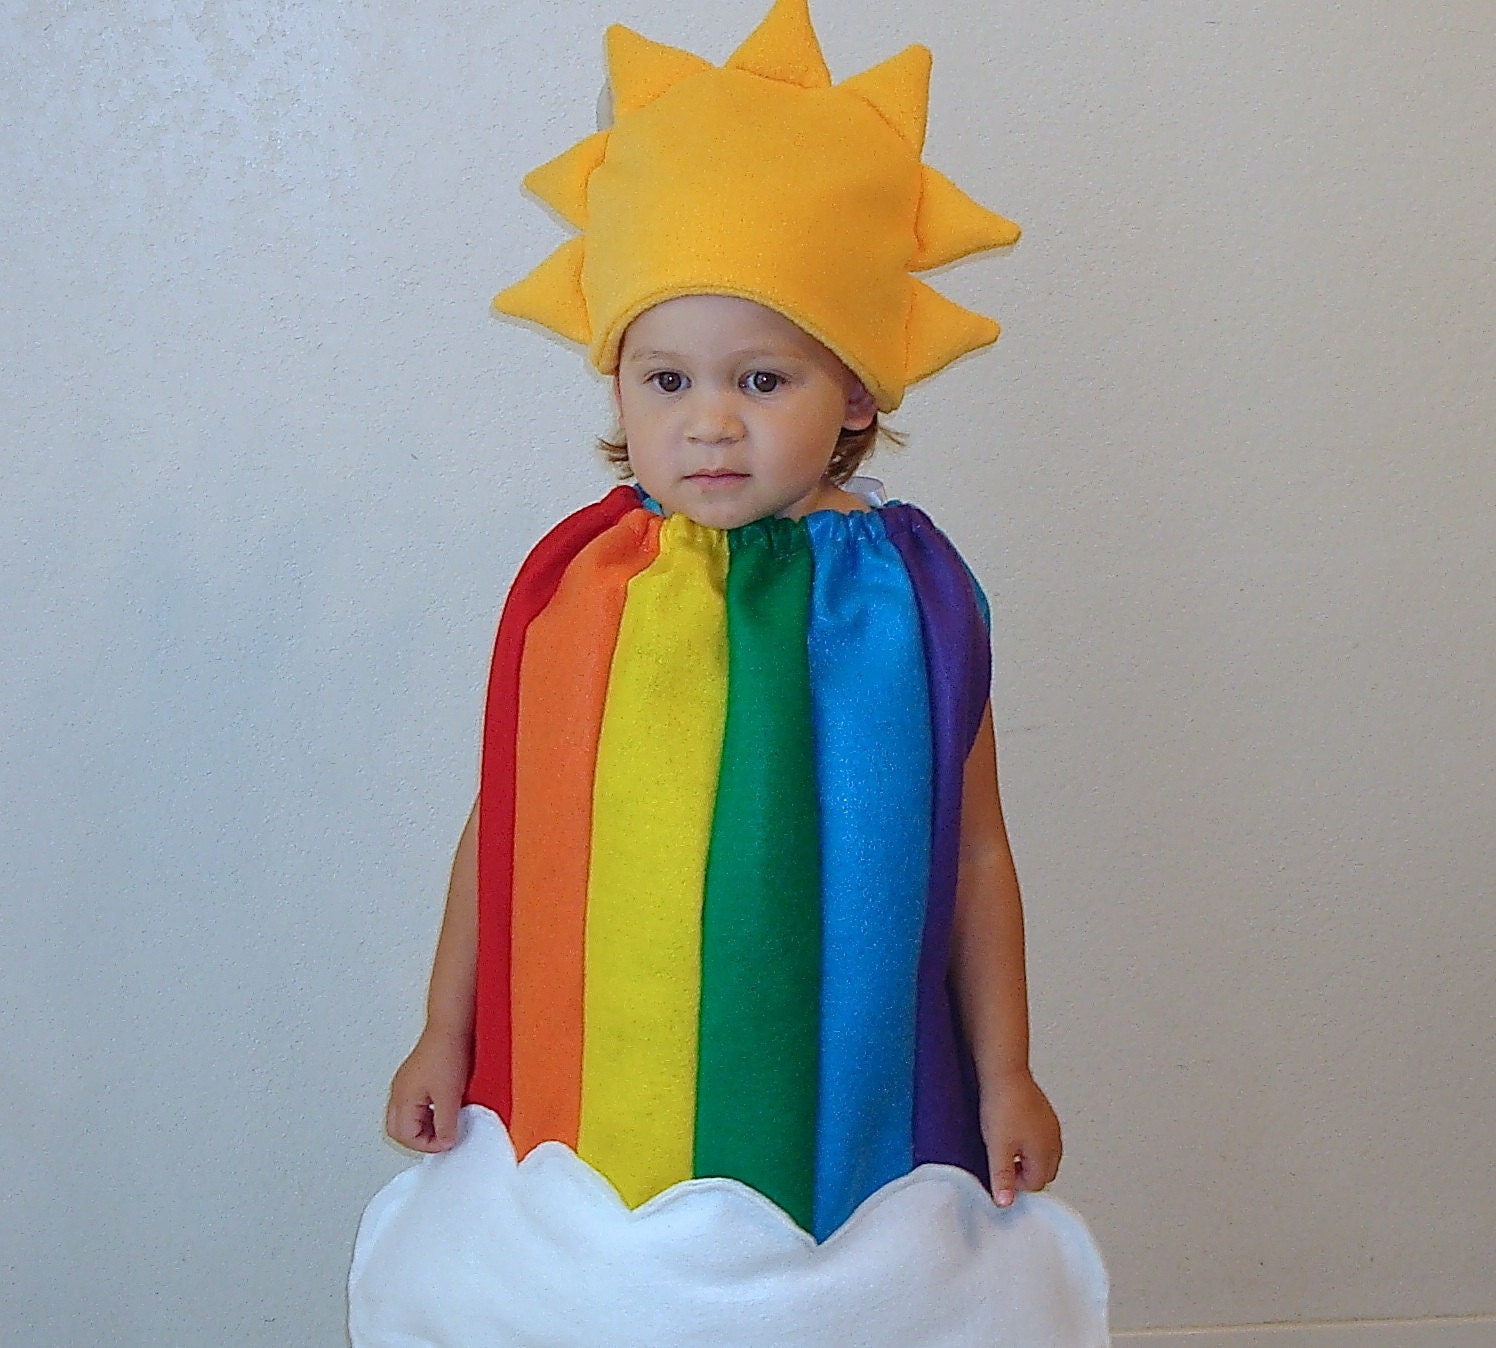 kids halloween costume childrens costume rainbow sun clouds. Black Bedroom Furniture Sets. Home Design Ideas